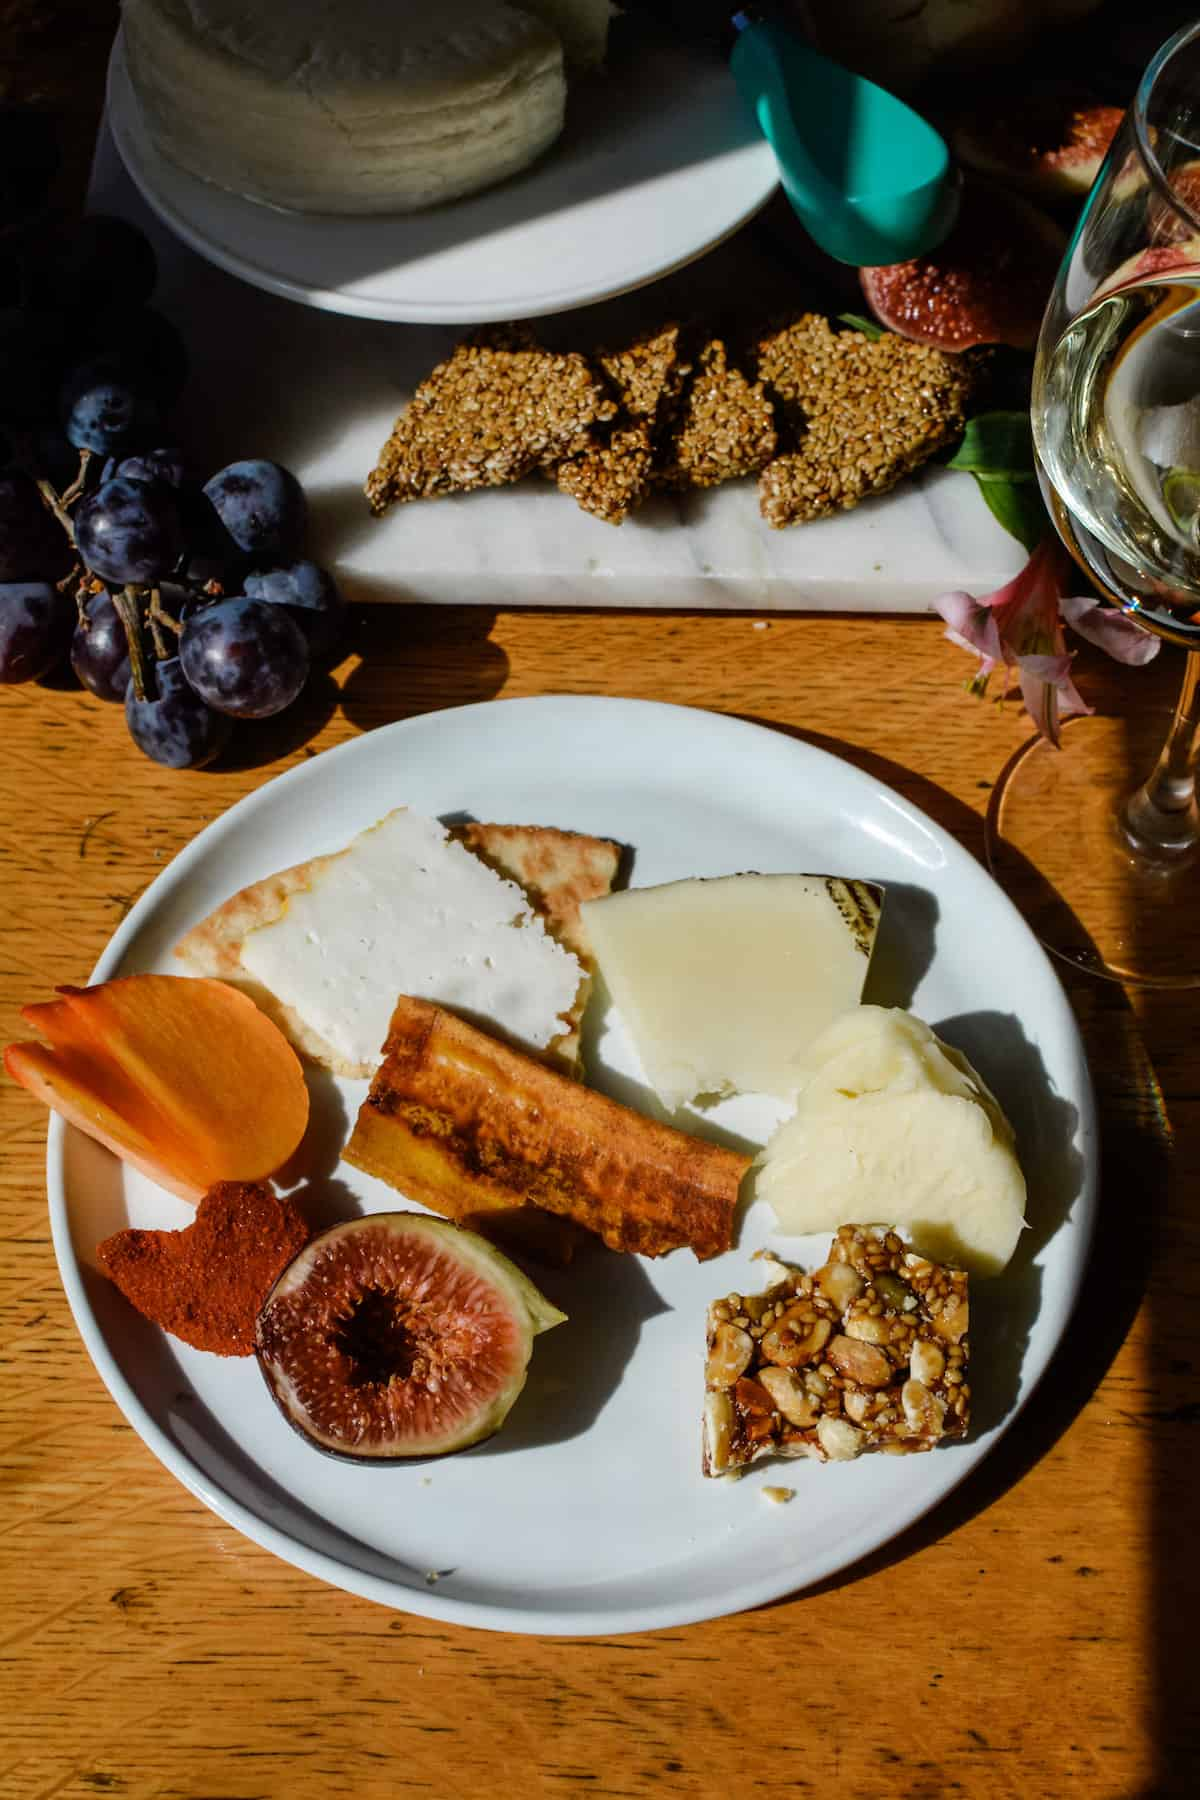 A white plate sitting on a wood table with pieces of cheese, a cracker, slices of persimmon, a half of a fig, and some nut brittle on it.